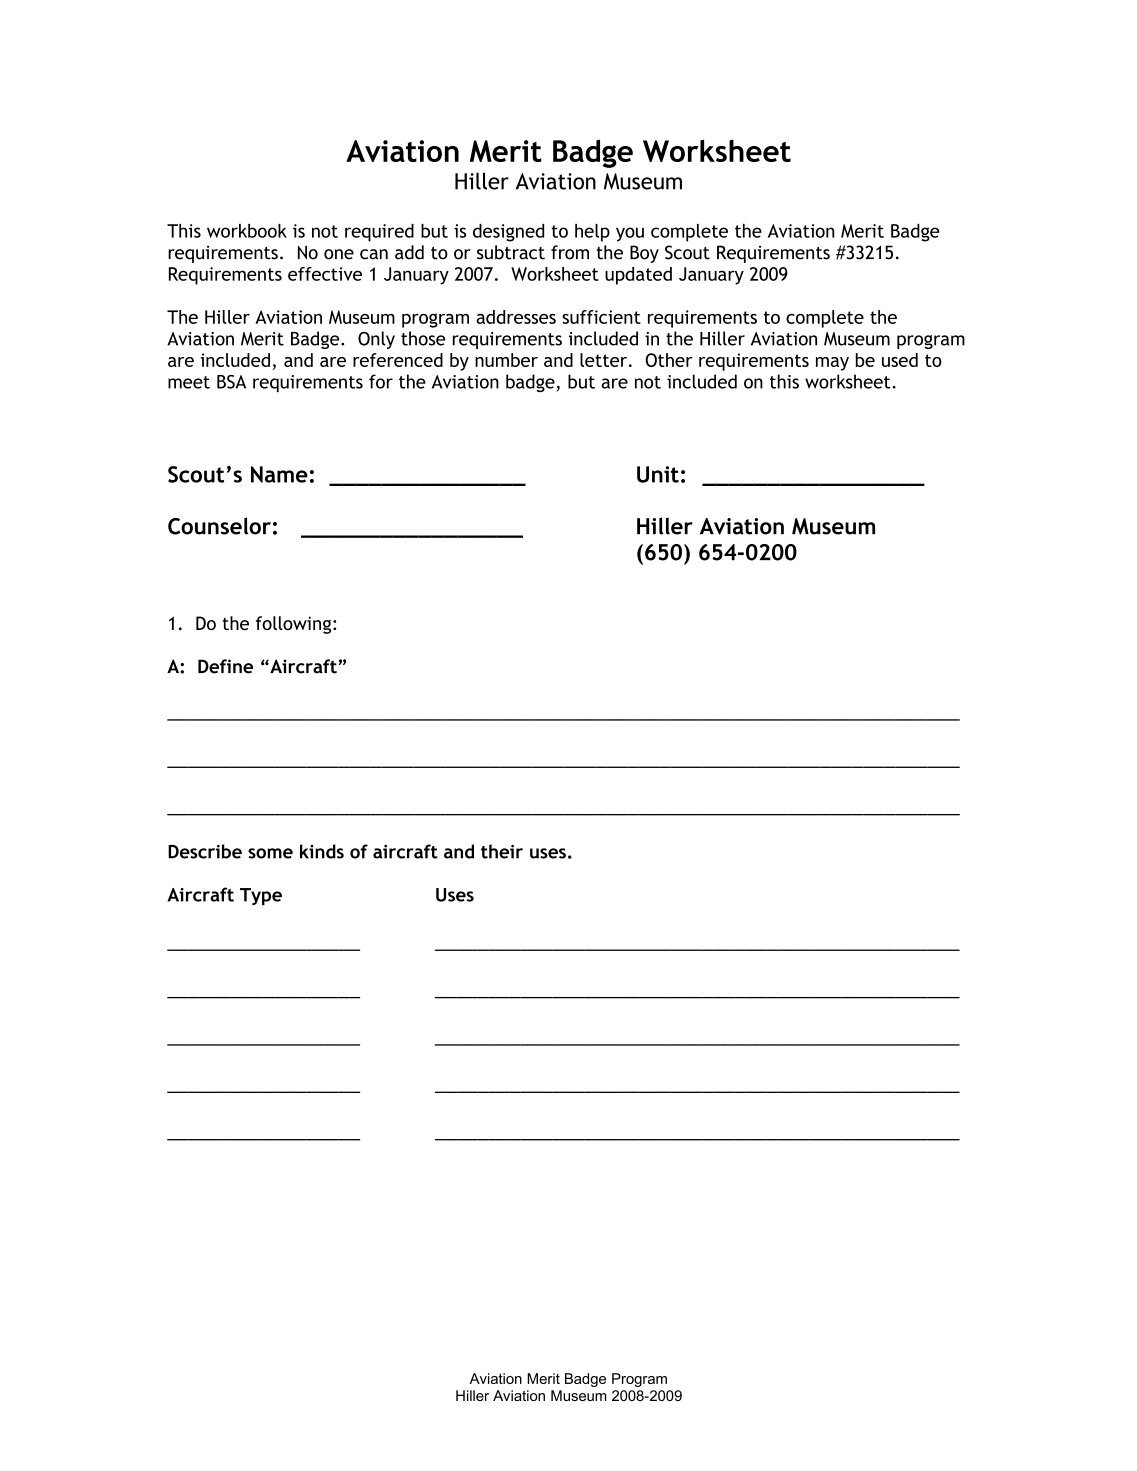 robotics merit badge worksheet - Termolak